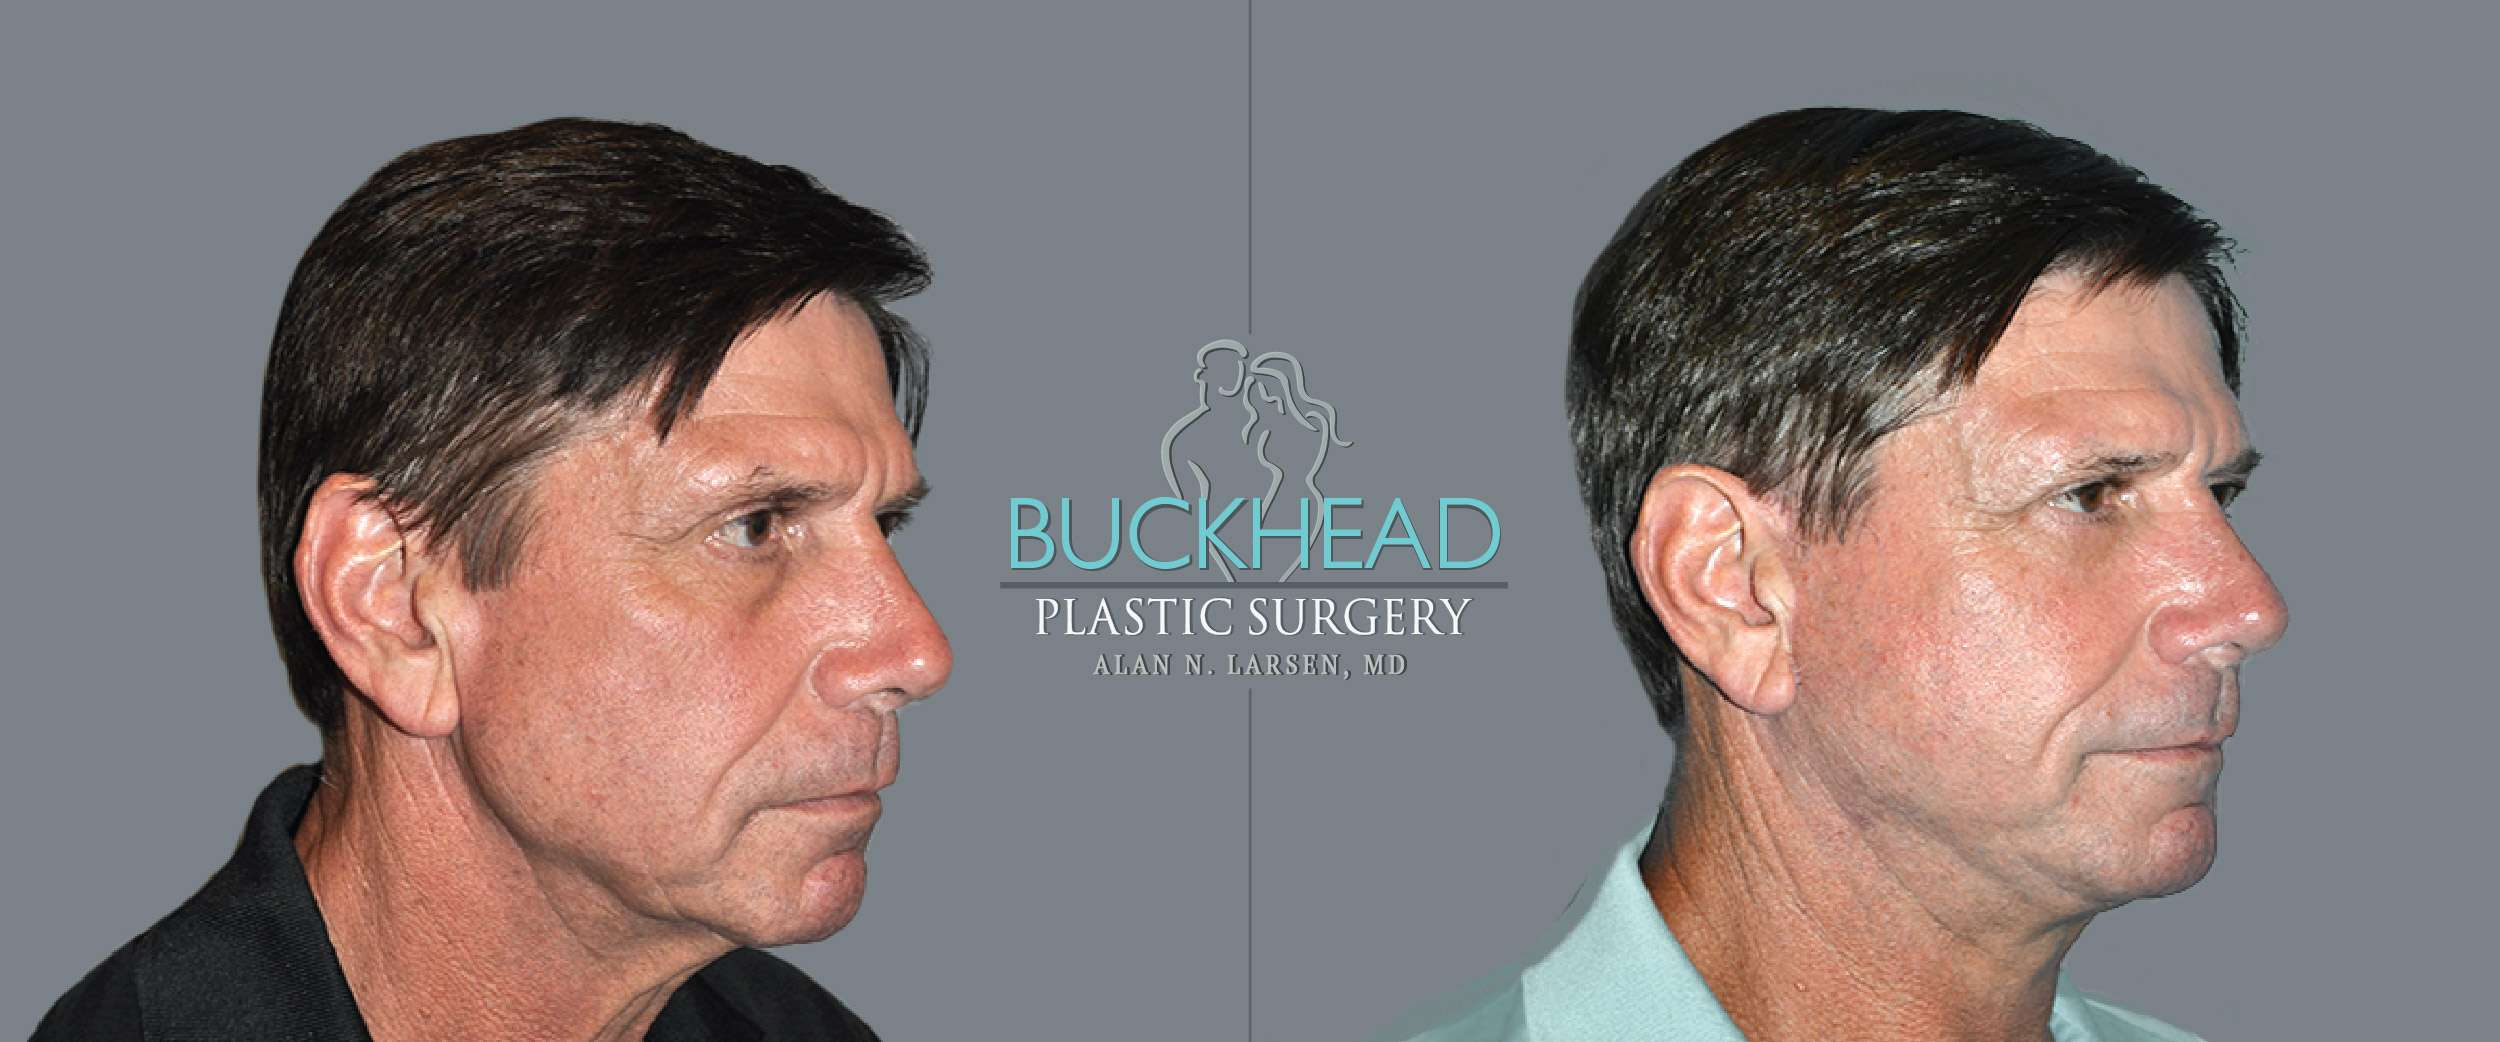 Before and After Photo Gallery | Blepharosty | Buckhead Plastic Surgery | Alan N. Larsen, MD | Board-Certified Plastic Surgeon | Atlanta GA